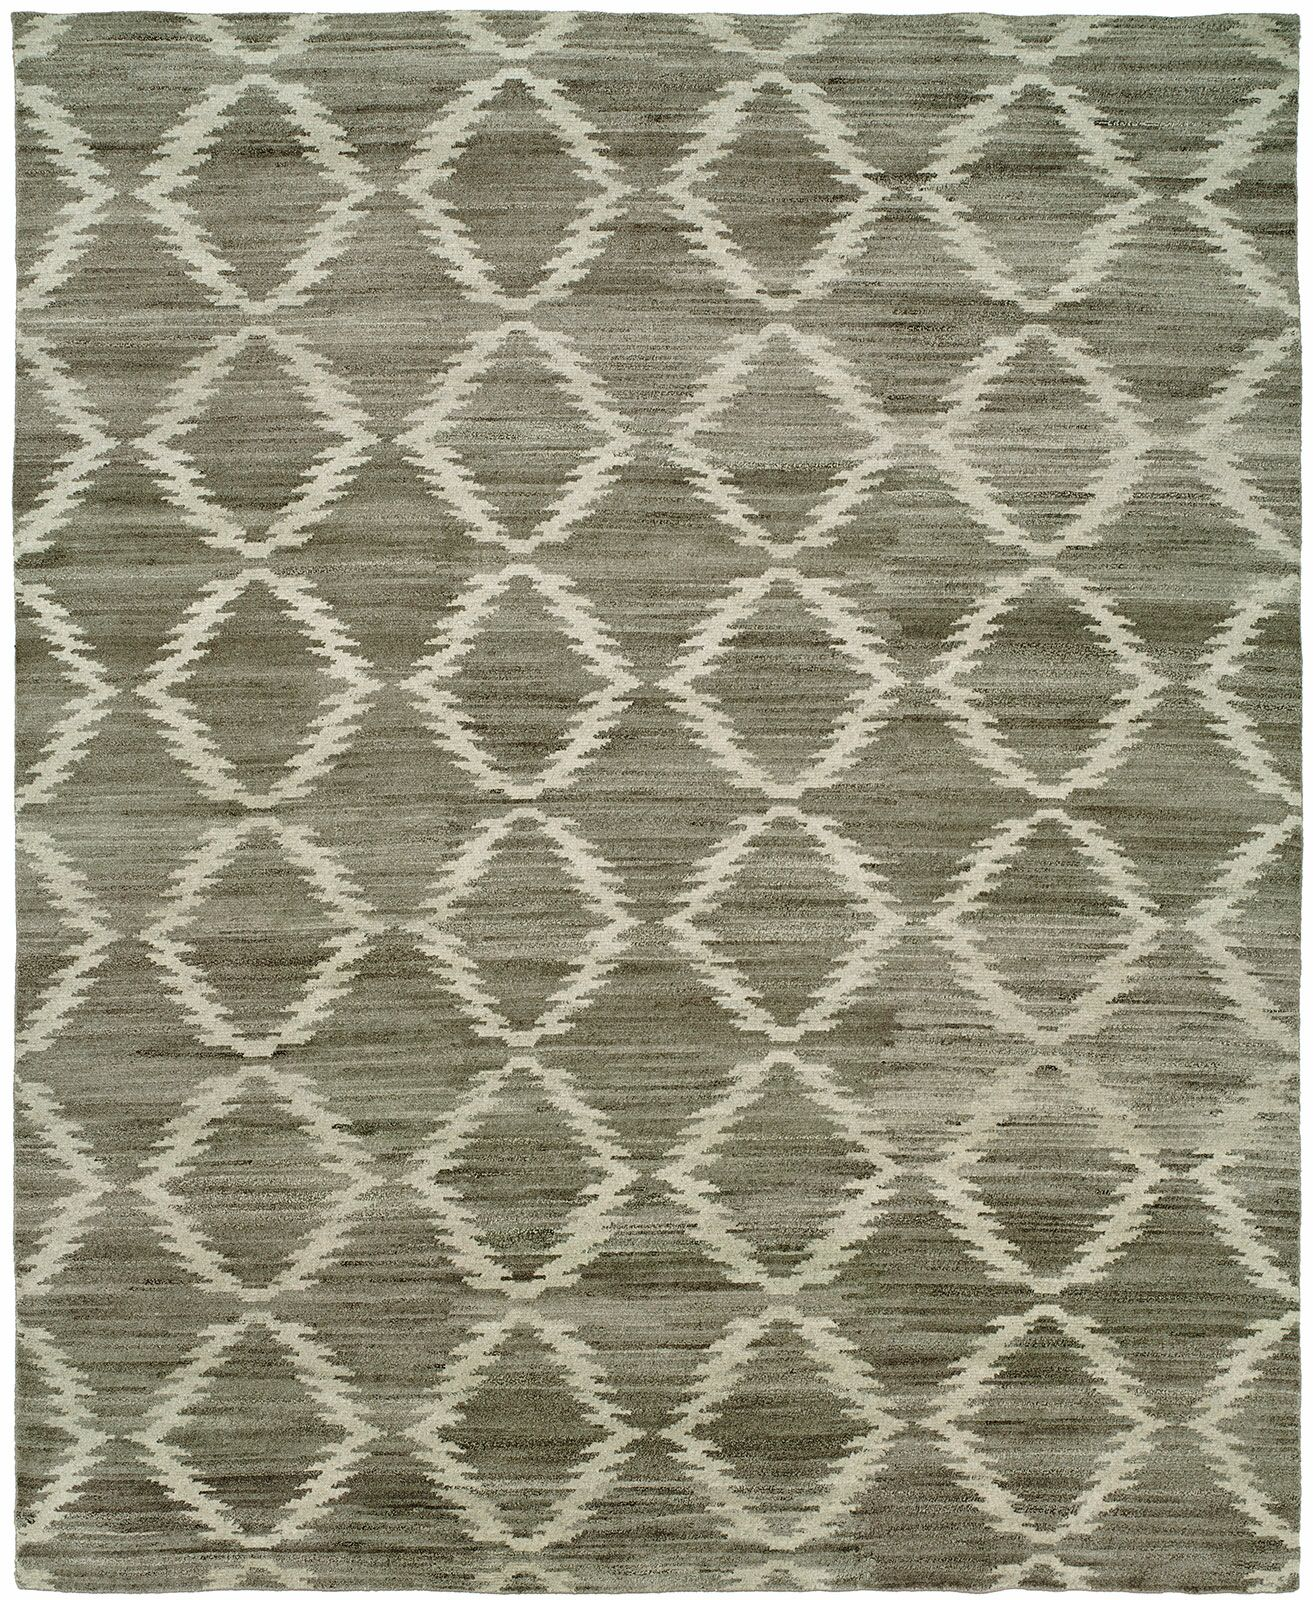 Provincetown Hand-Knotted Wool Gray Area Rug Rug Size: Rectangle 9' x 12'